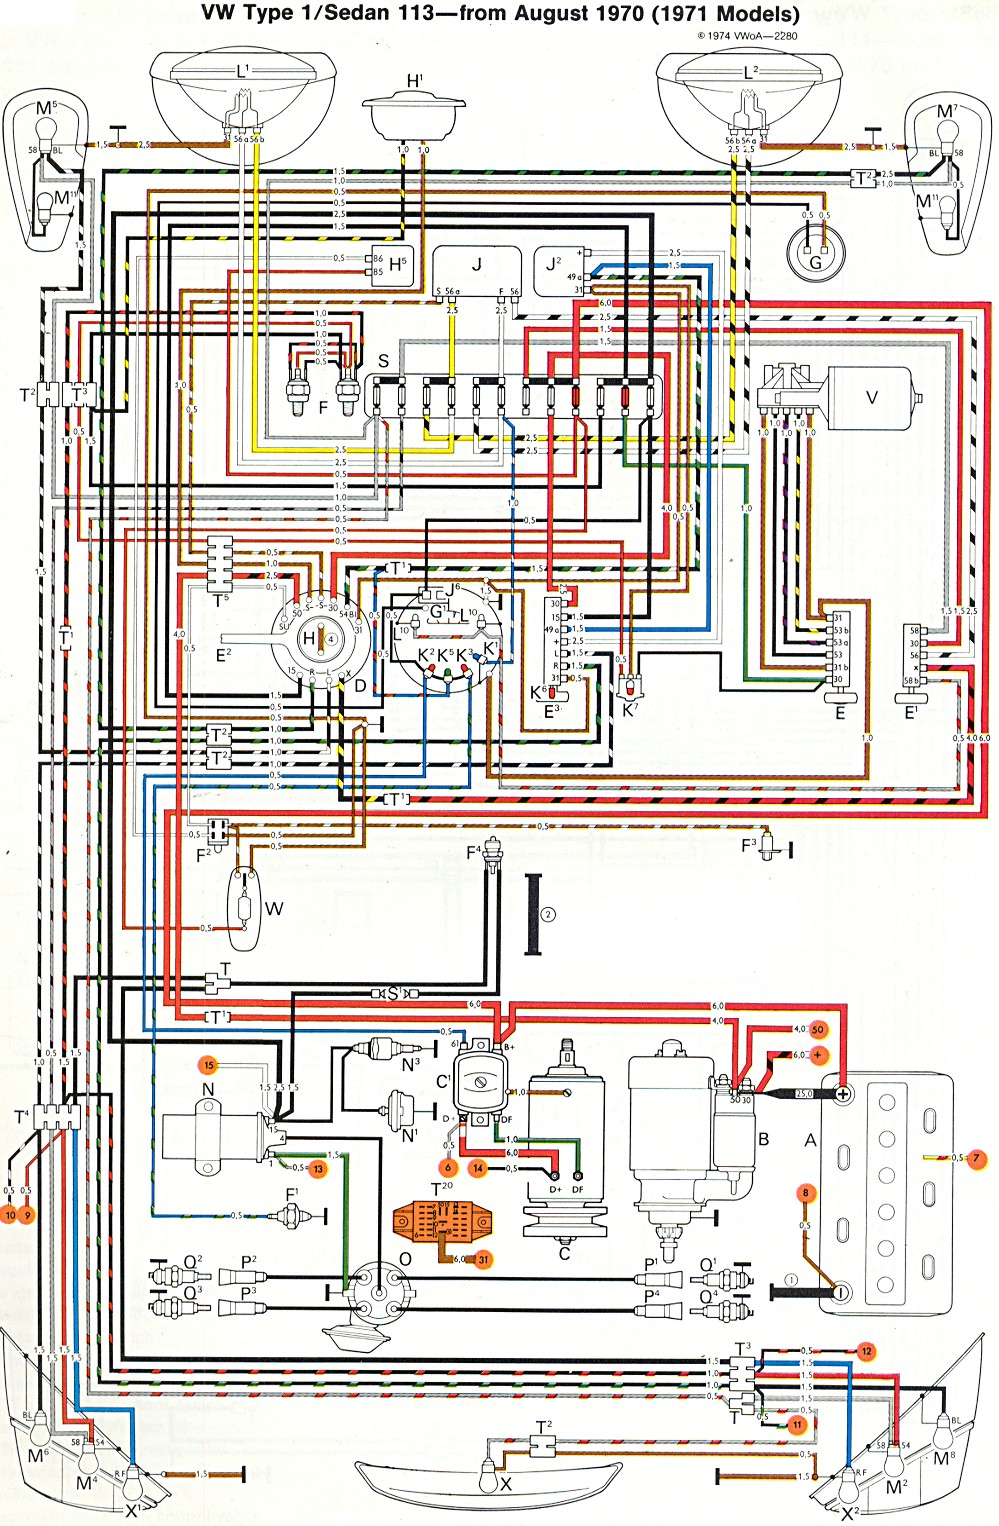 thesamba.com :: type 1 wiring diagrams vw wiring diagrams free vw wiring diagrams cabrio 2002